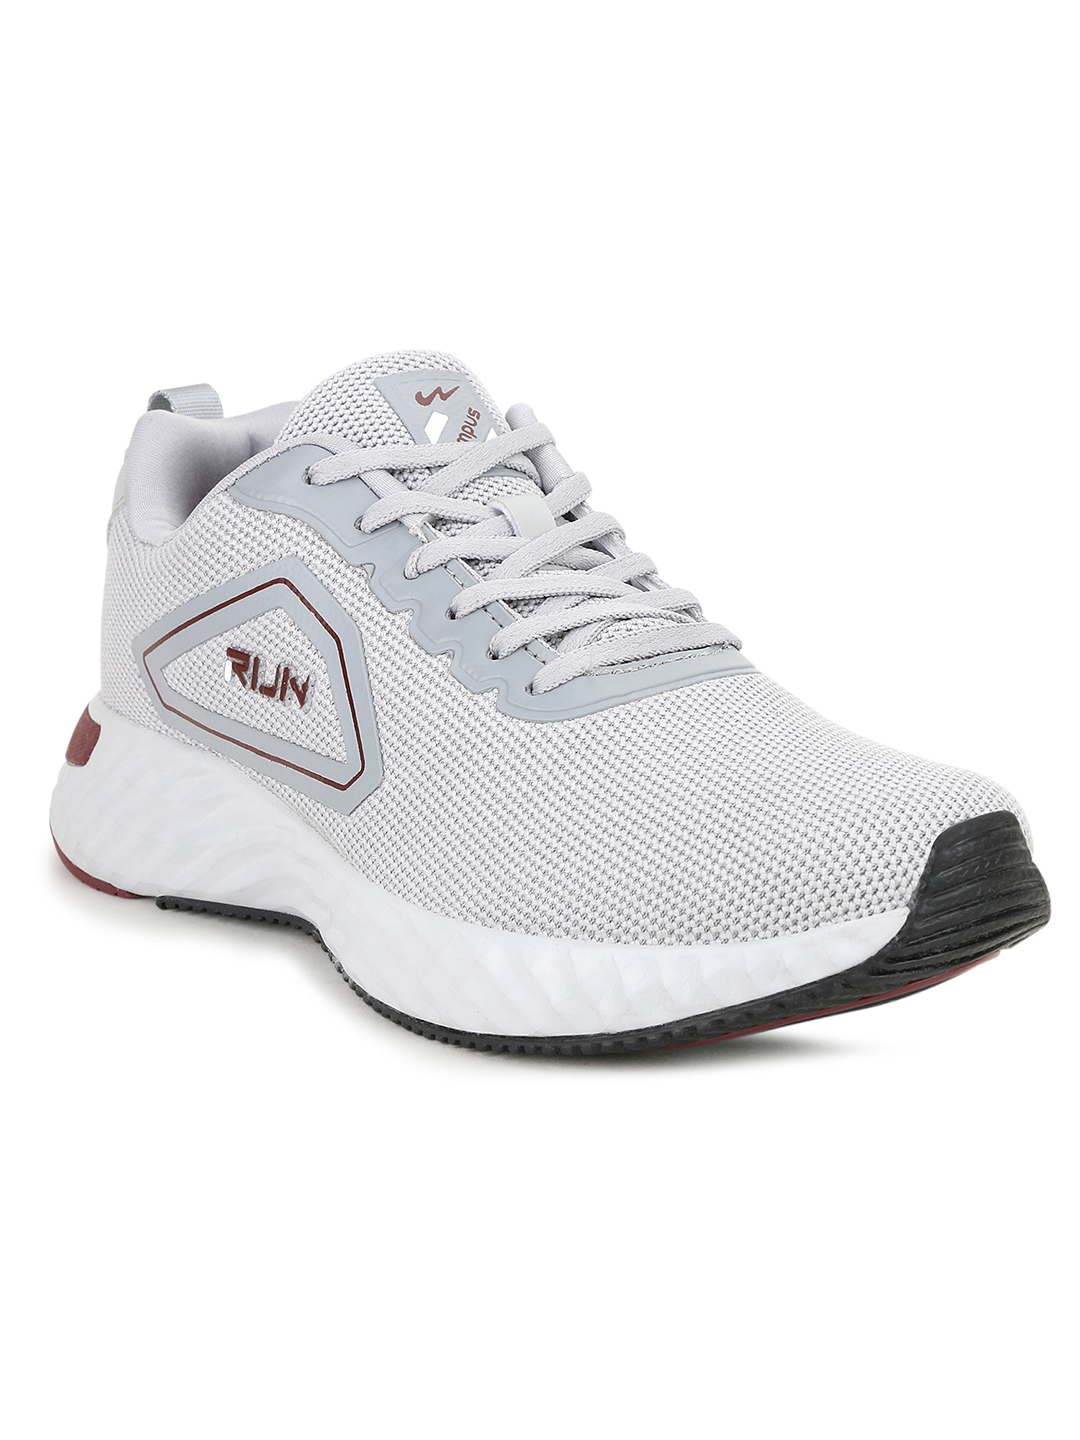 Campus Shoes   Grey Run Running Shoes